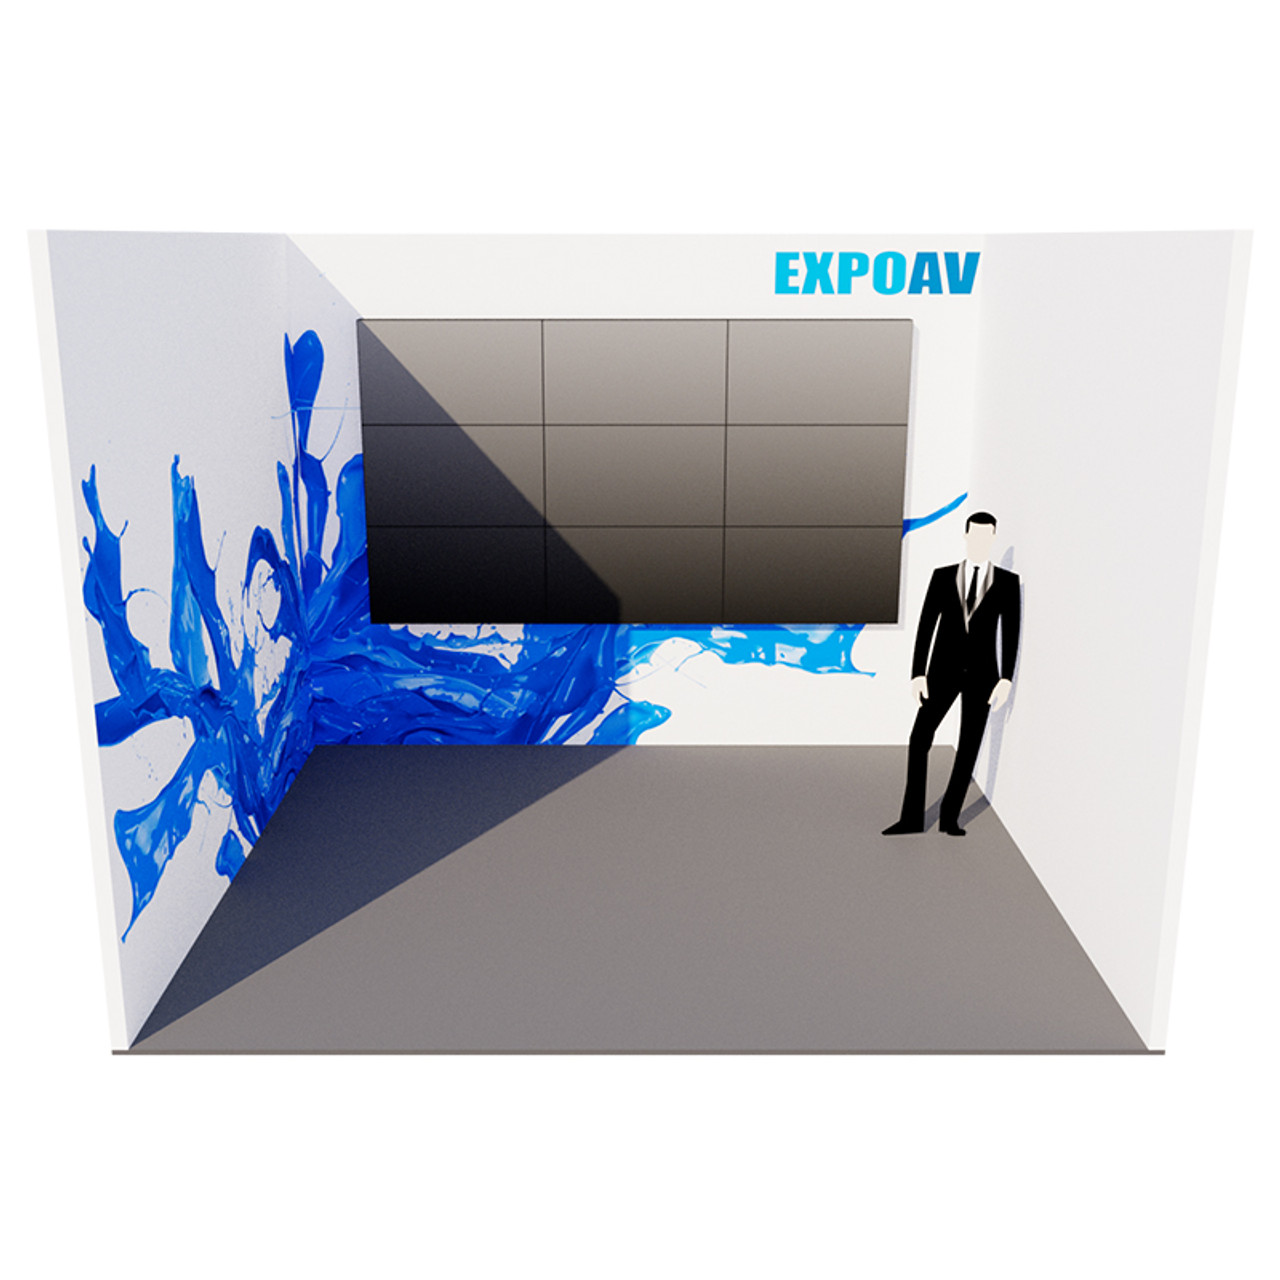 Exhibition Stand Equipment Hire : Azure exhibition stand u shaped expoav rent is a london audio